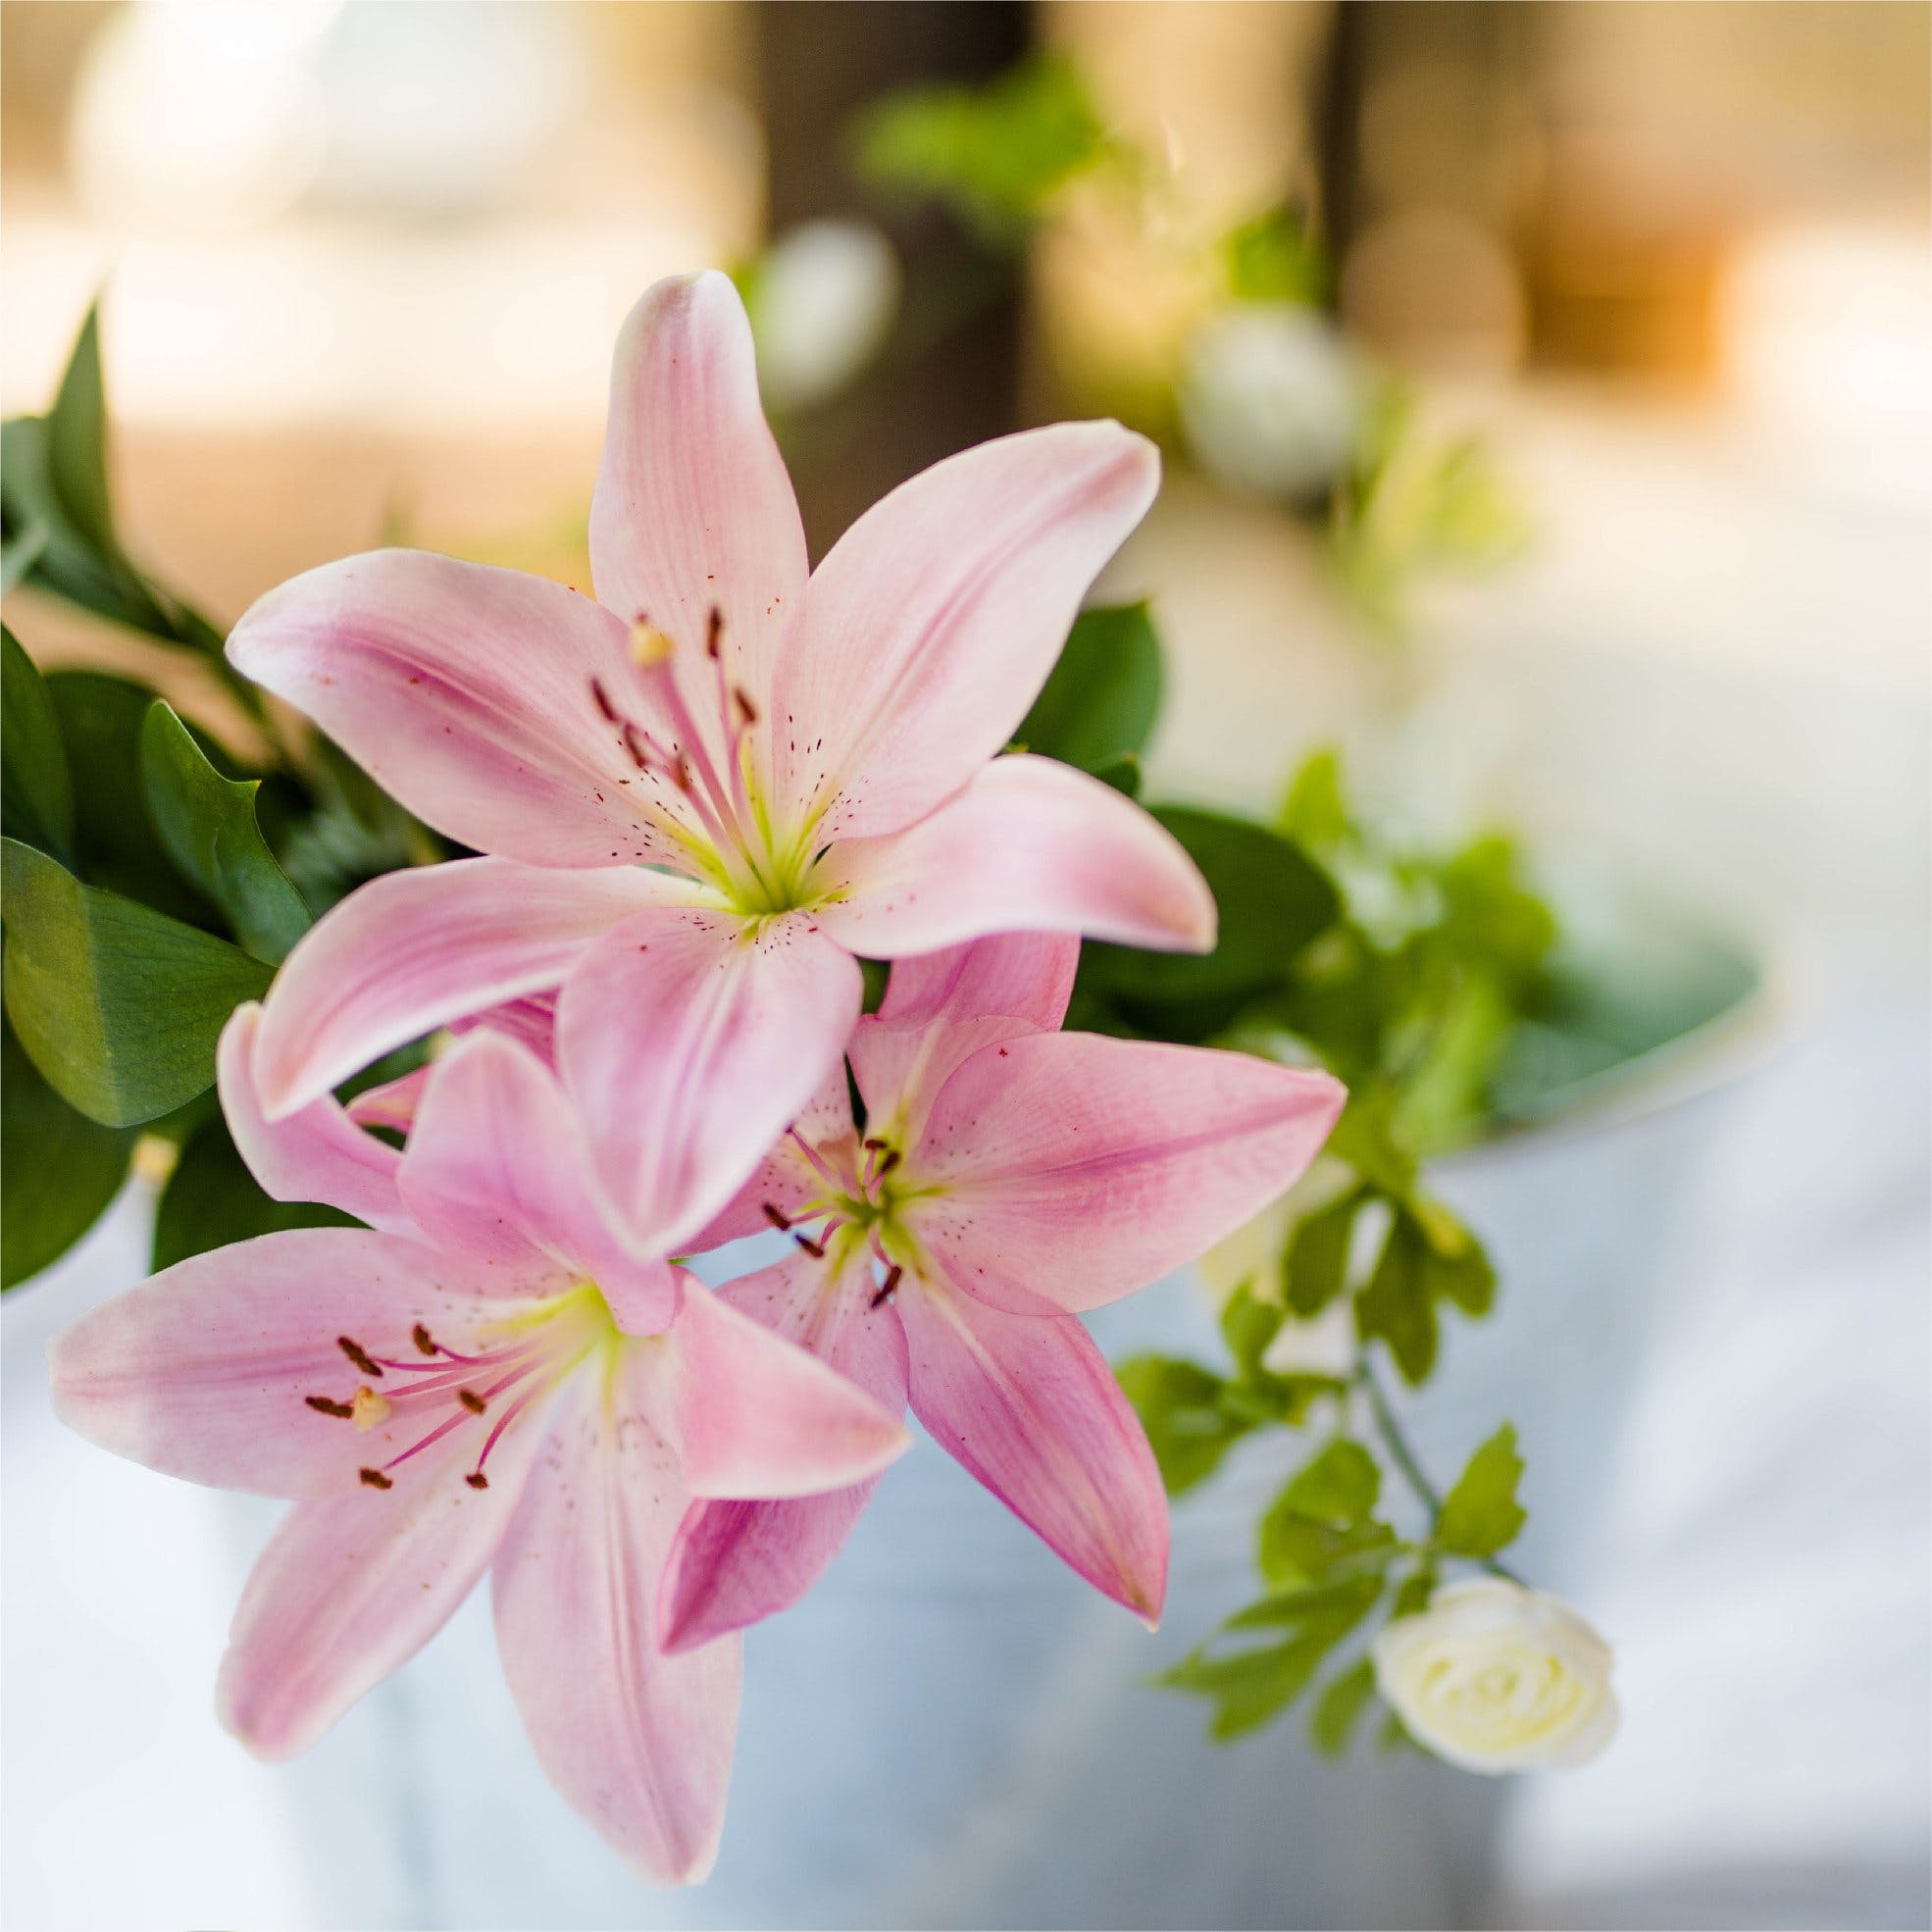 Flower,Pink,Petal,Lily,White,Plant,Flowering plant,Bouquet,Spring,Lily family